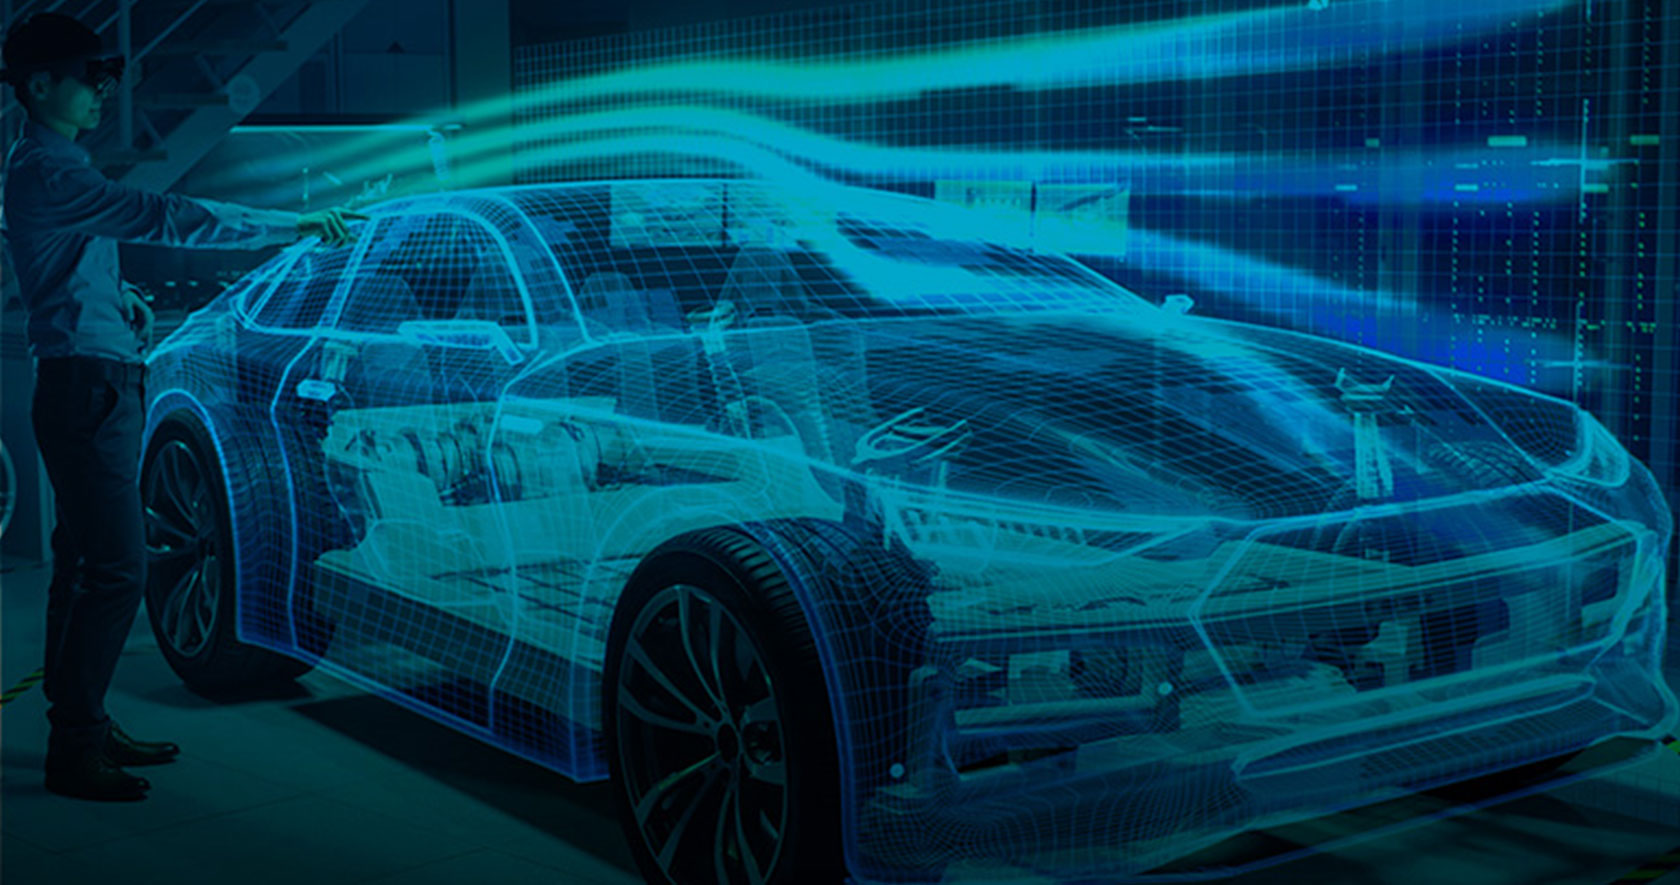 An electric vehicles render with 100%EV overlaid on the image representing the push to electric vehicles